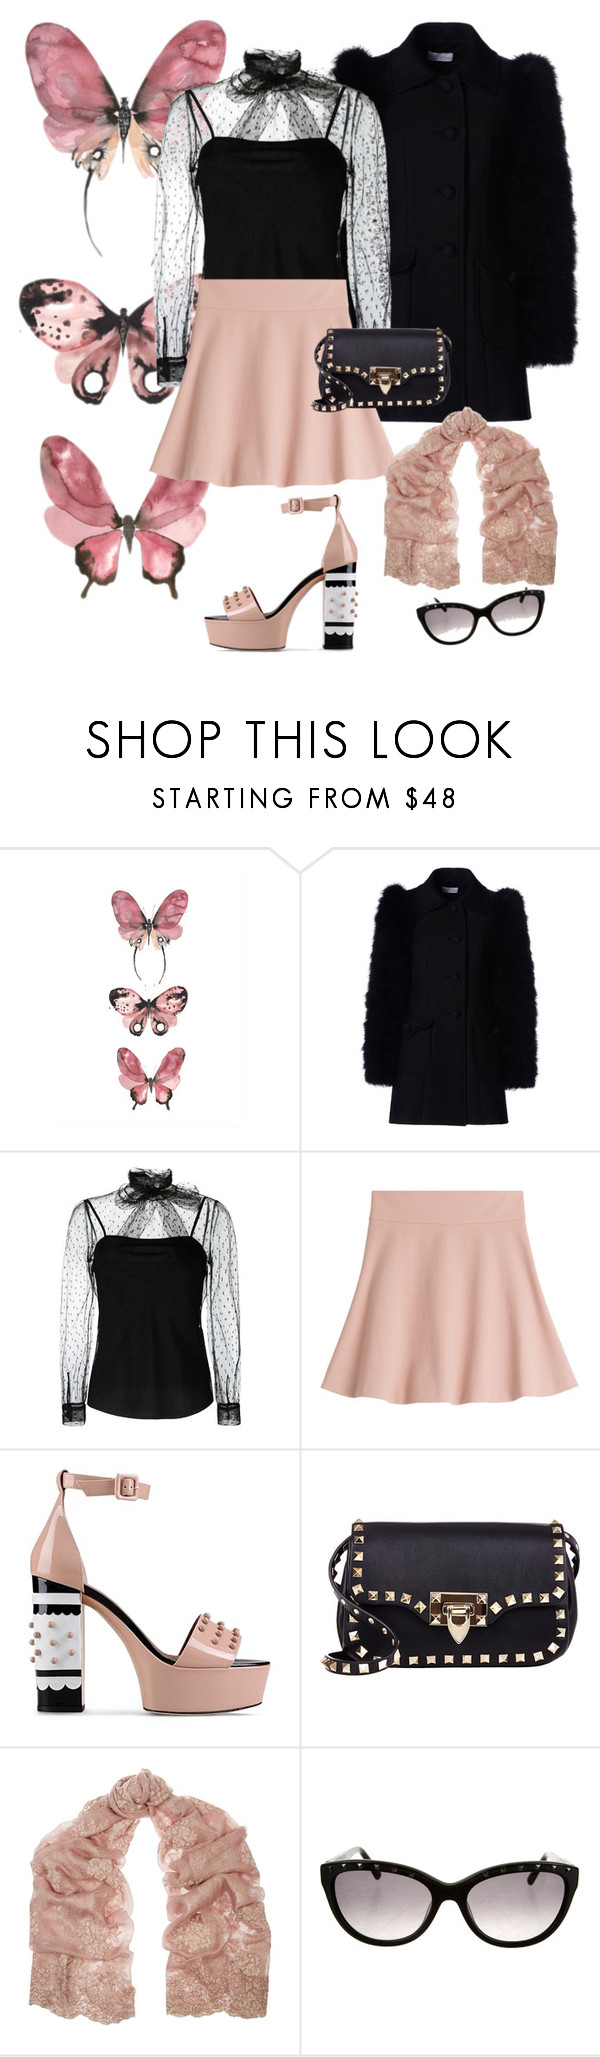 """""""Valley Girl. #gagmewithaspoon"""" by denibrad ❤ liked on Polyvore featuring RED Valentino and Valentino"""